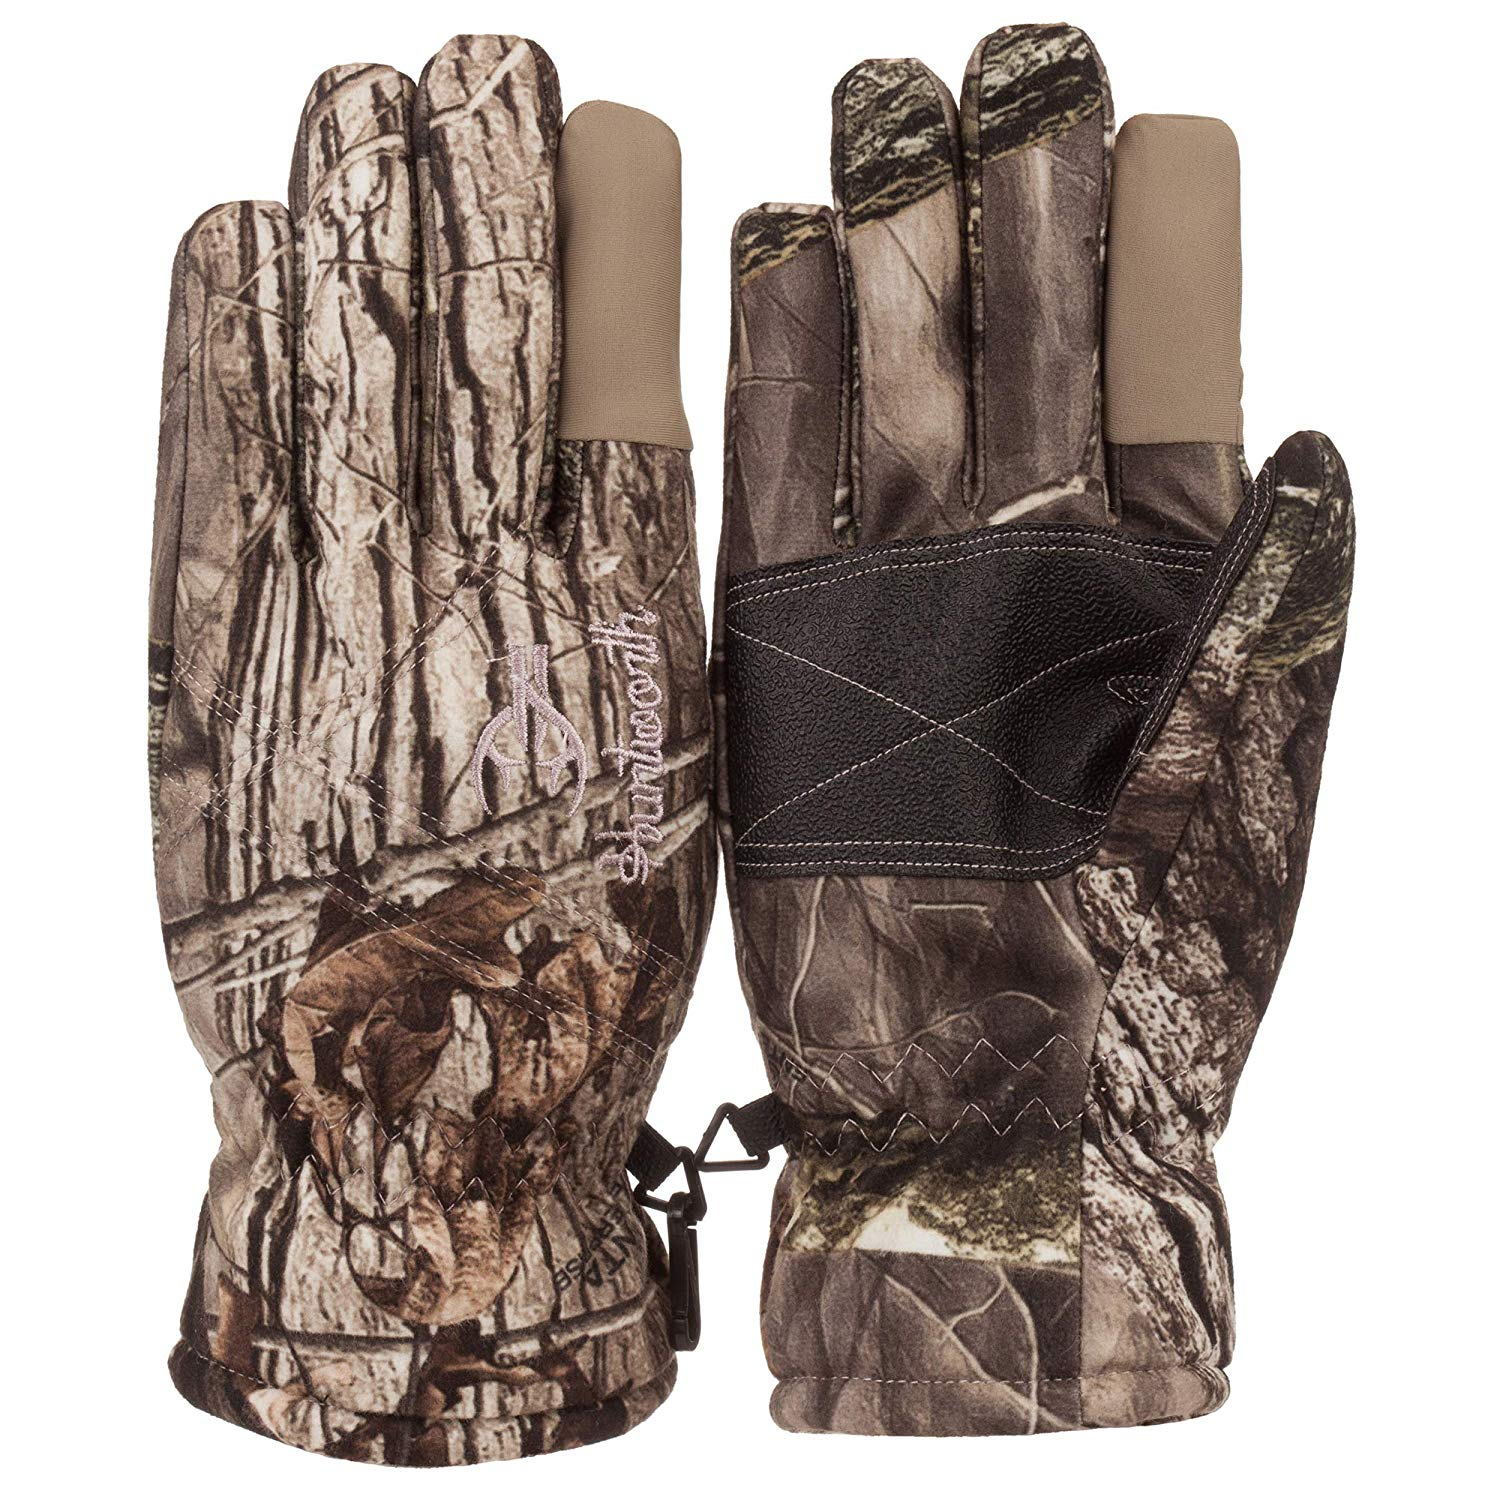 Women's Insulated Classic Cold Weather Camo Ladies Hunting Glove (Medium)